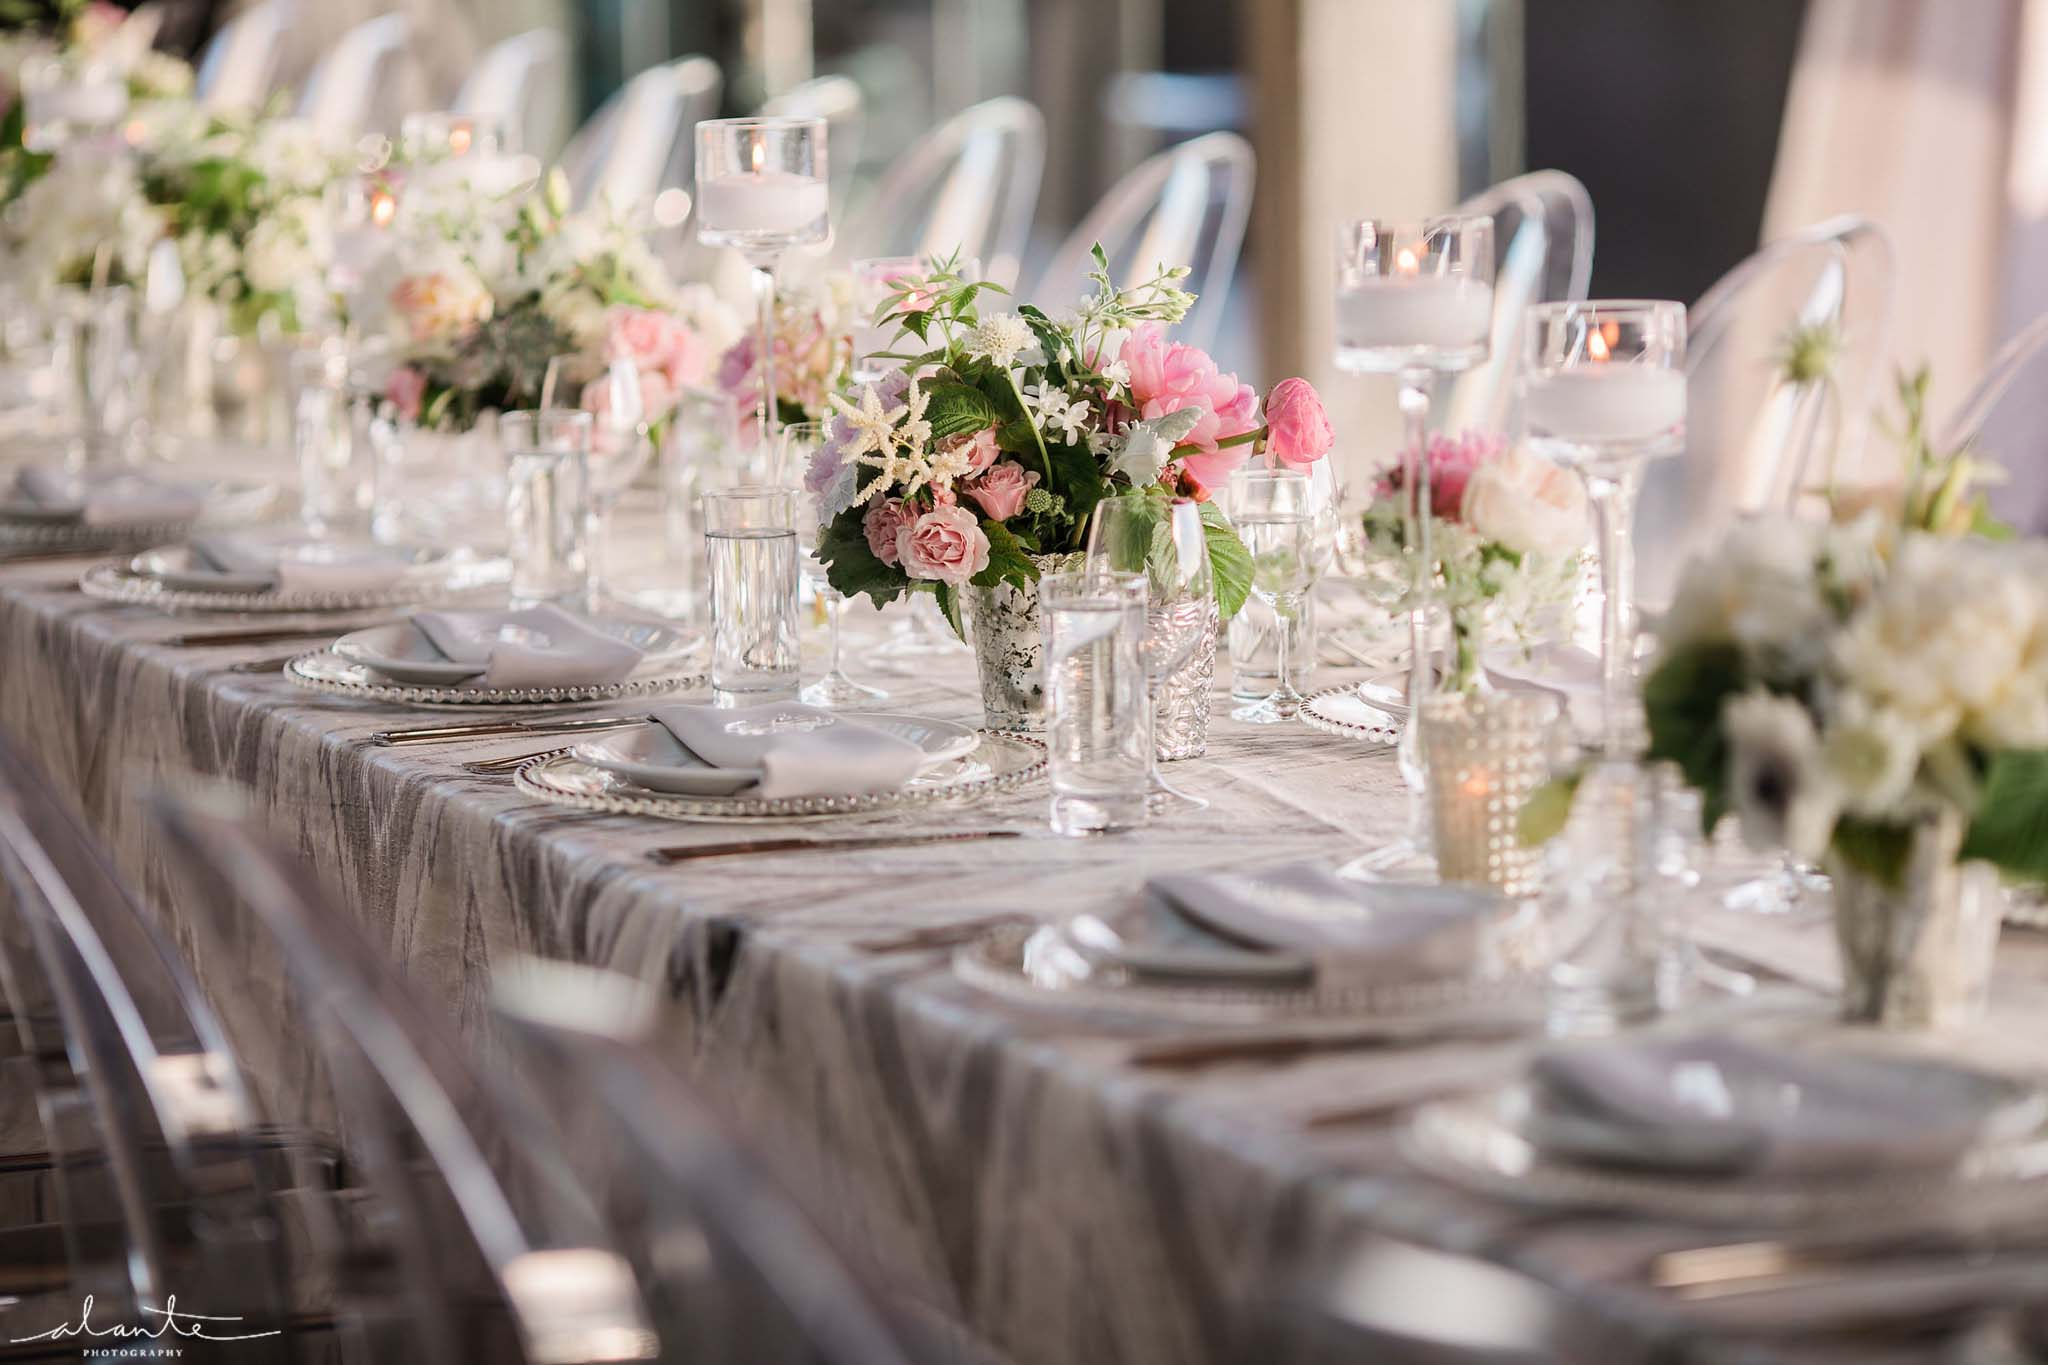 Long table lined with pink flowers and silver linen - Olympic Rooftop Pavilion wedding with pink peonies by Flora Nova Design Seattle